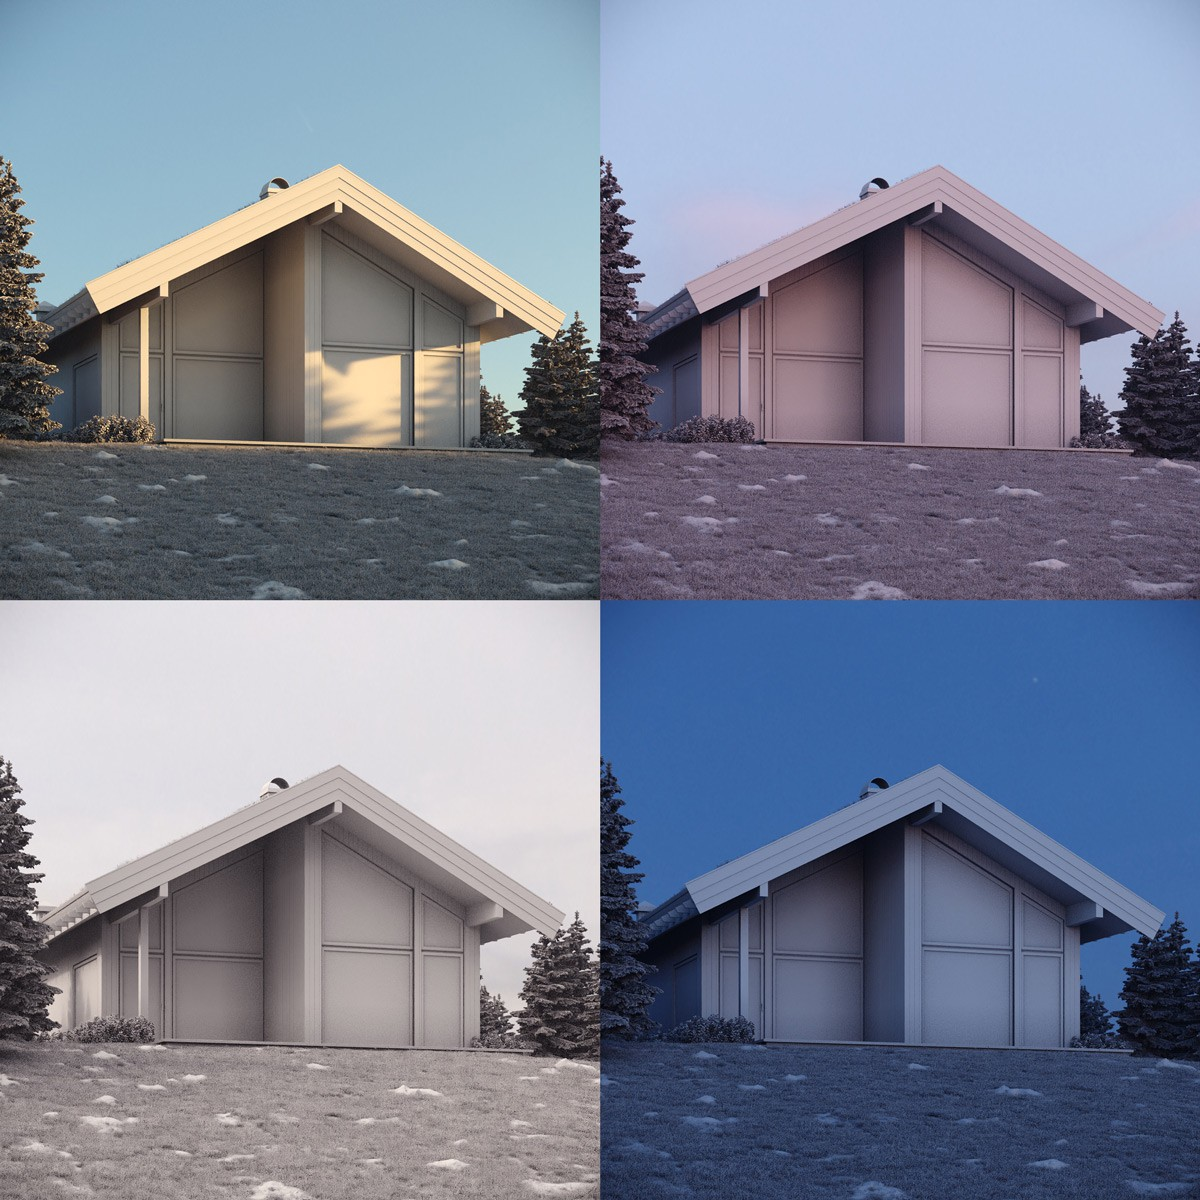 Quick HDRI Loader Tests on Architectural Visualisation